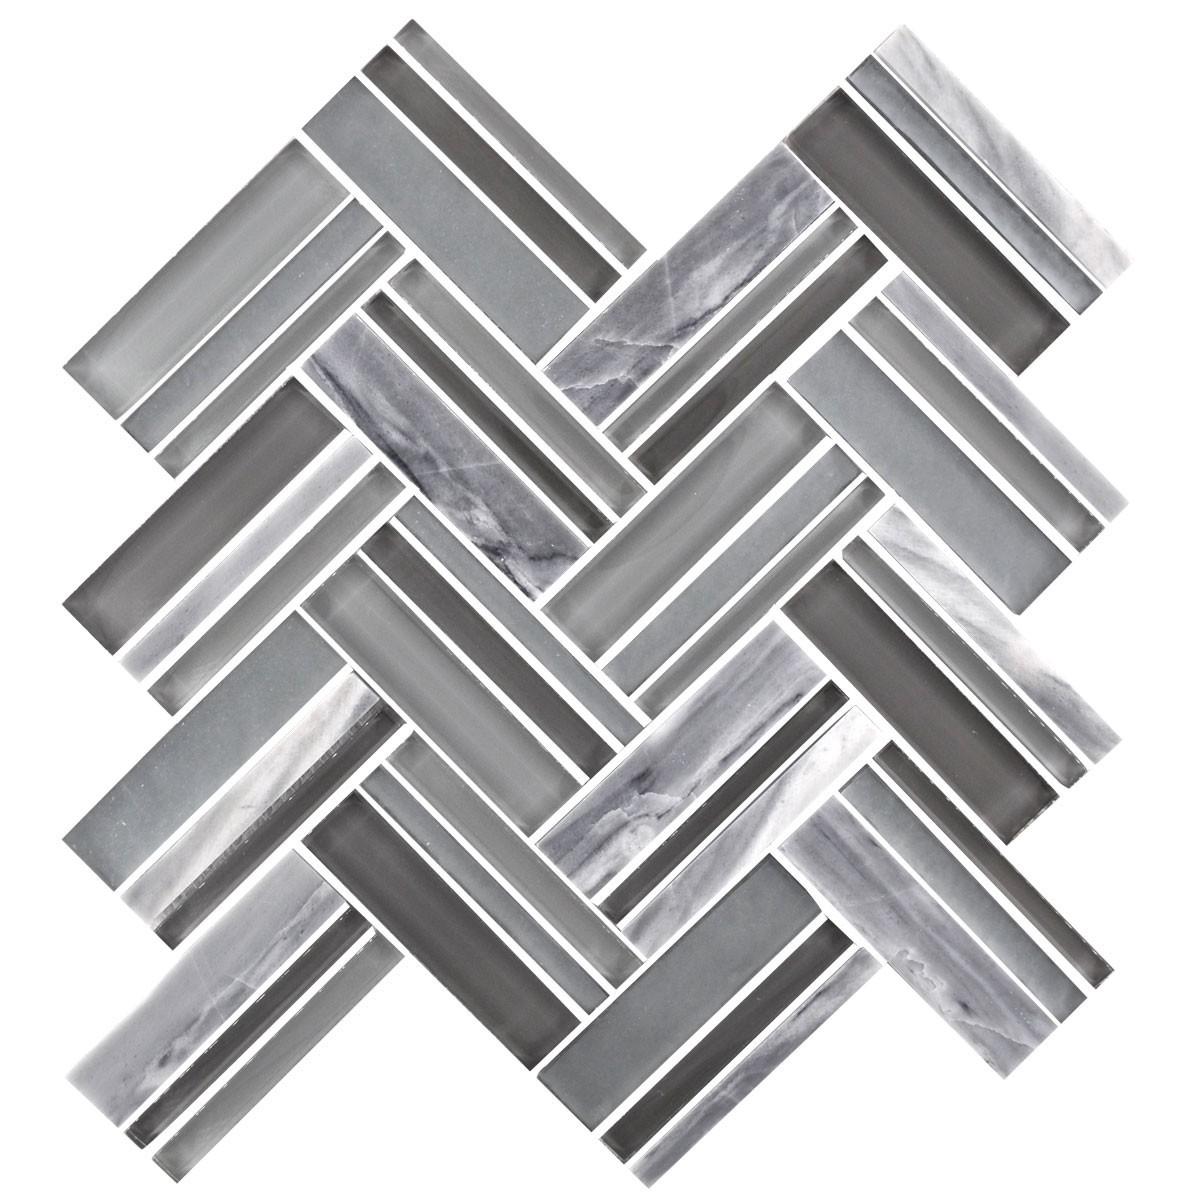 12.4 in. x 13.8 in. Glass and Stone Blend Strip Mosaic Tile - 8mm Thickness (DK-8NF0606-005)